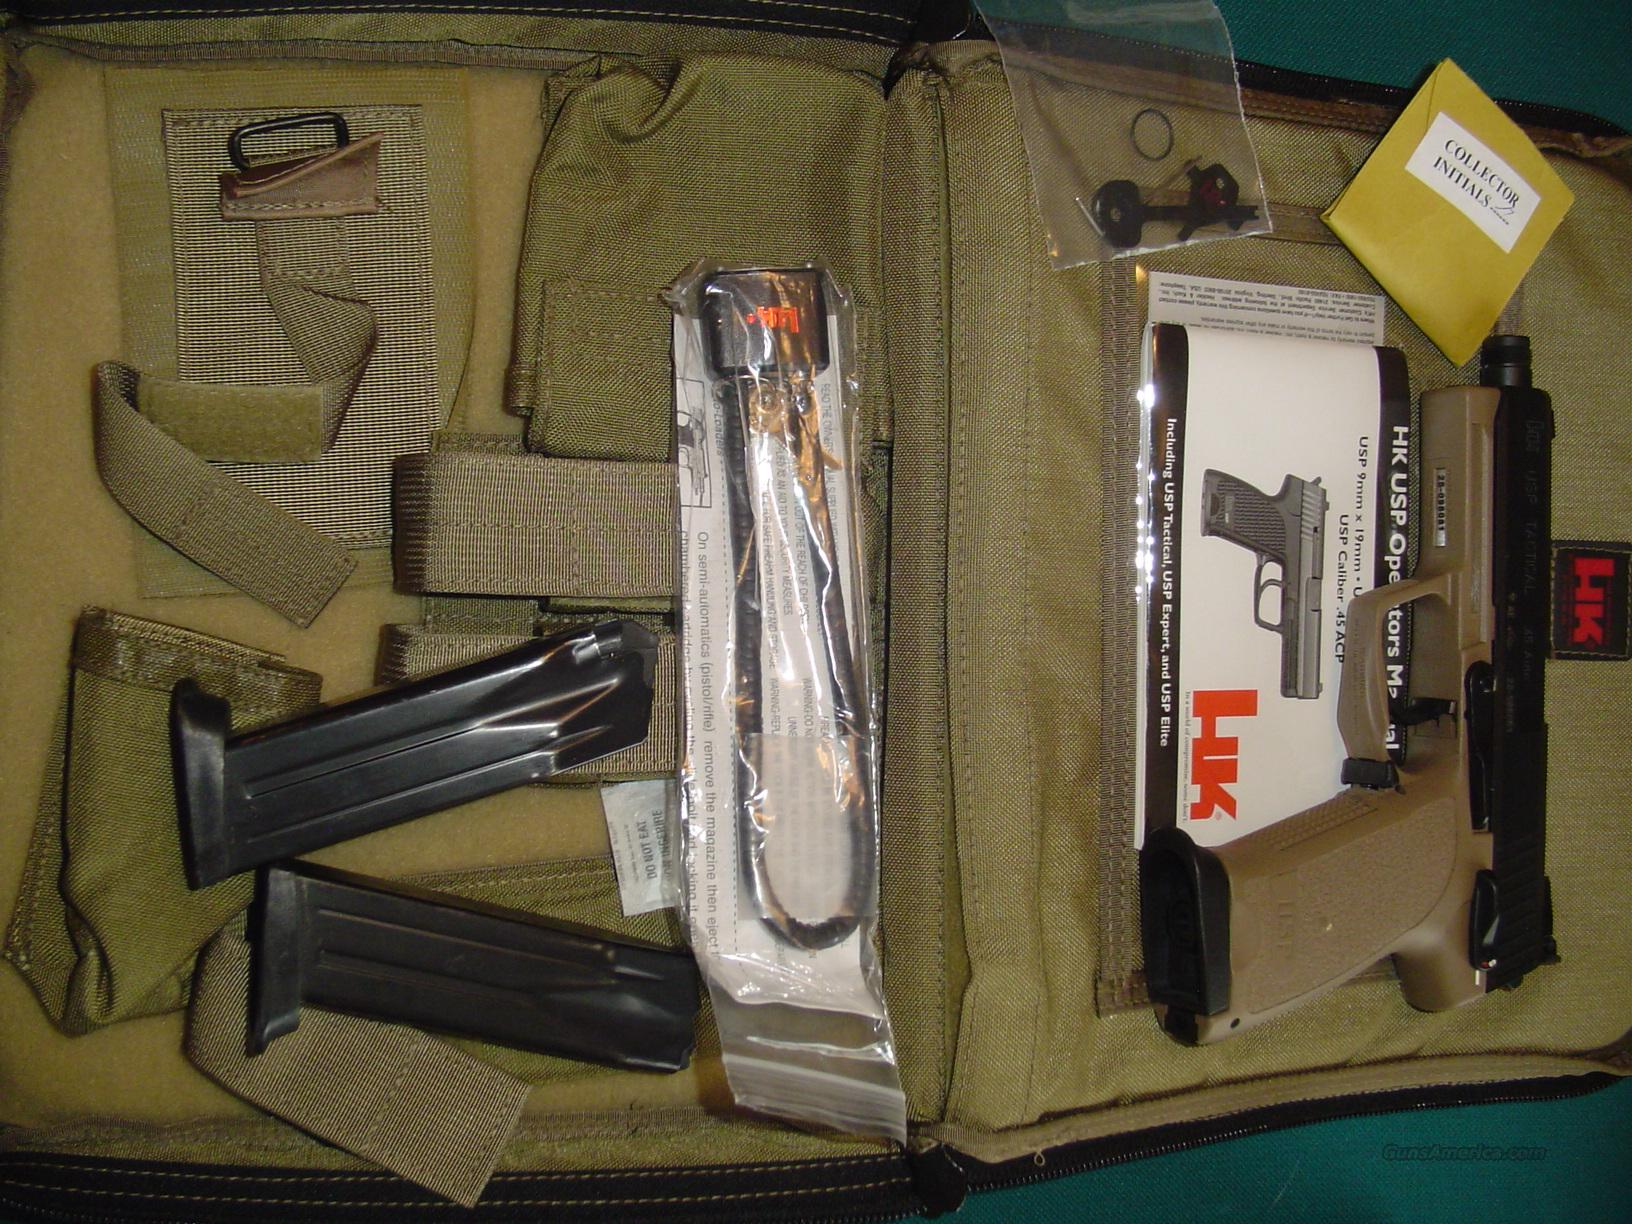 REDUCED!!!  NEW IN FACTORY BAG--RARE HK USP 45 TACTICAL DESERT TAN, MANUAL, 3 CLIPS & EXTRAS  Guns > Pistols > Heckler & Koch Pistols > Polymer Frame